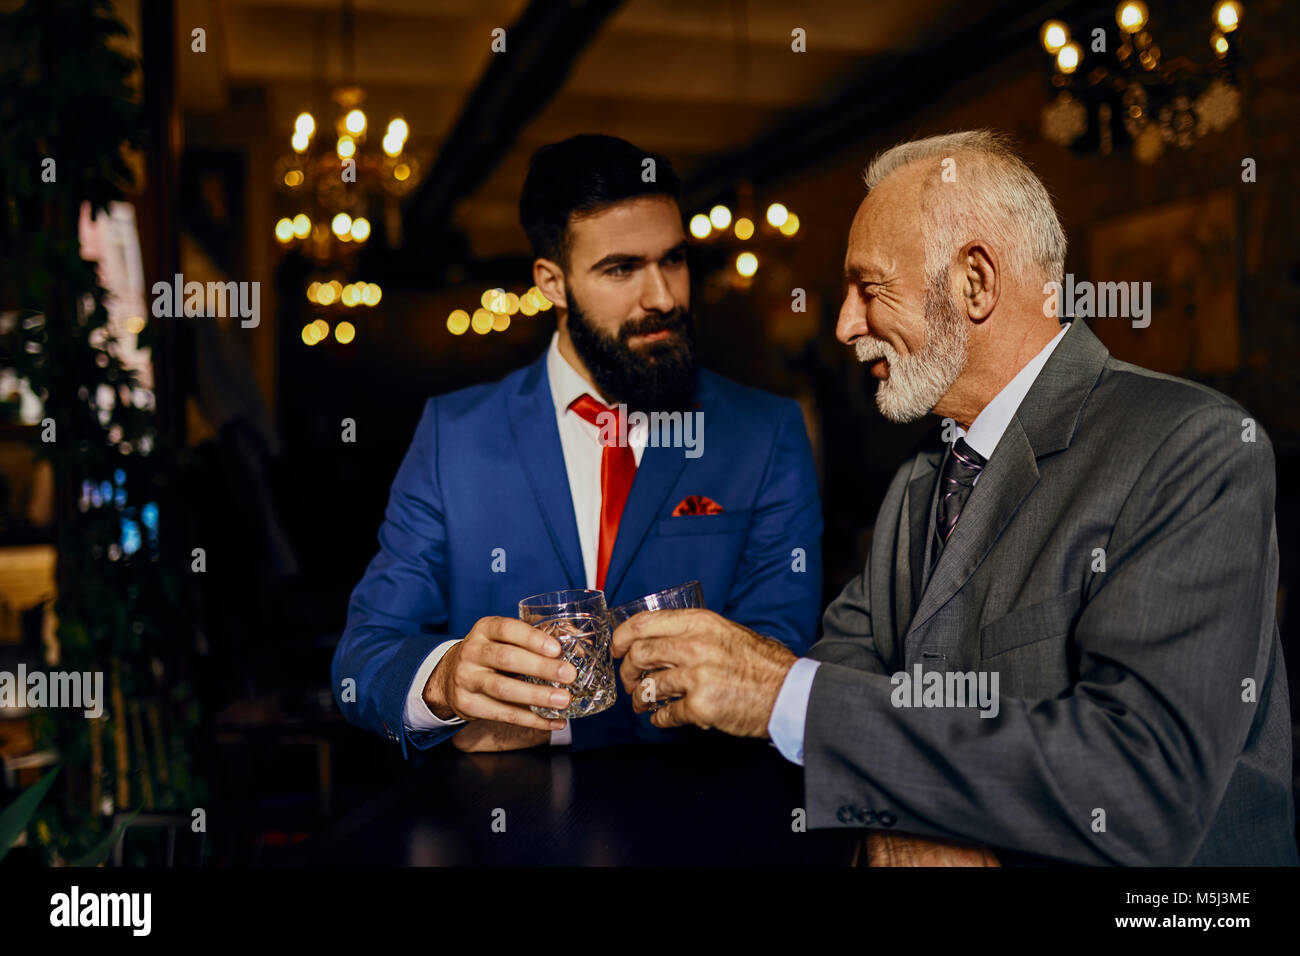 Two elegant men in a bar clinking tumblers - Stock Image